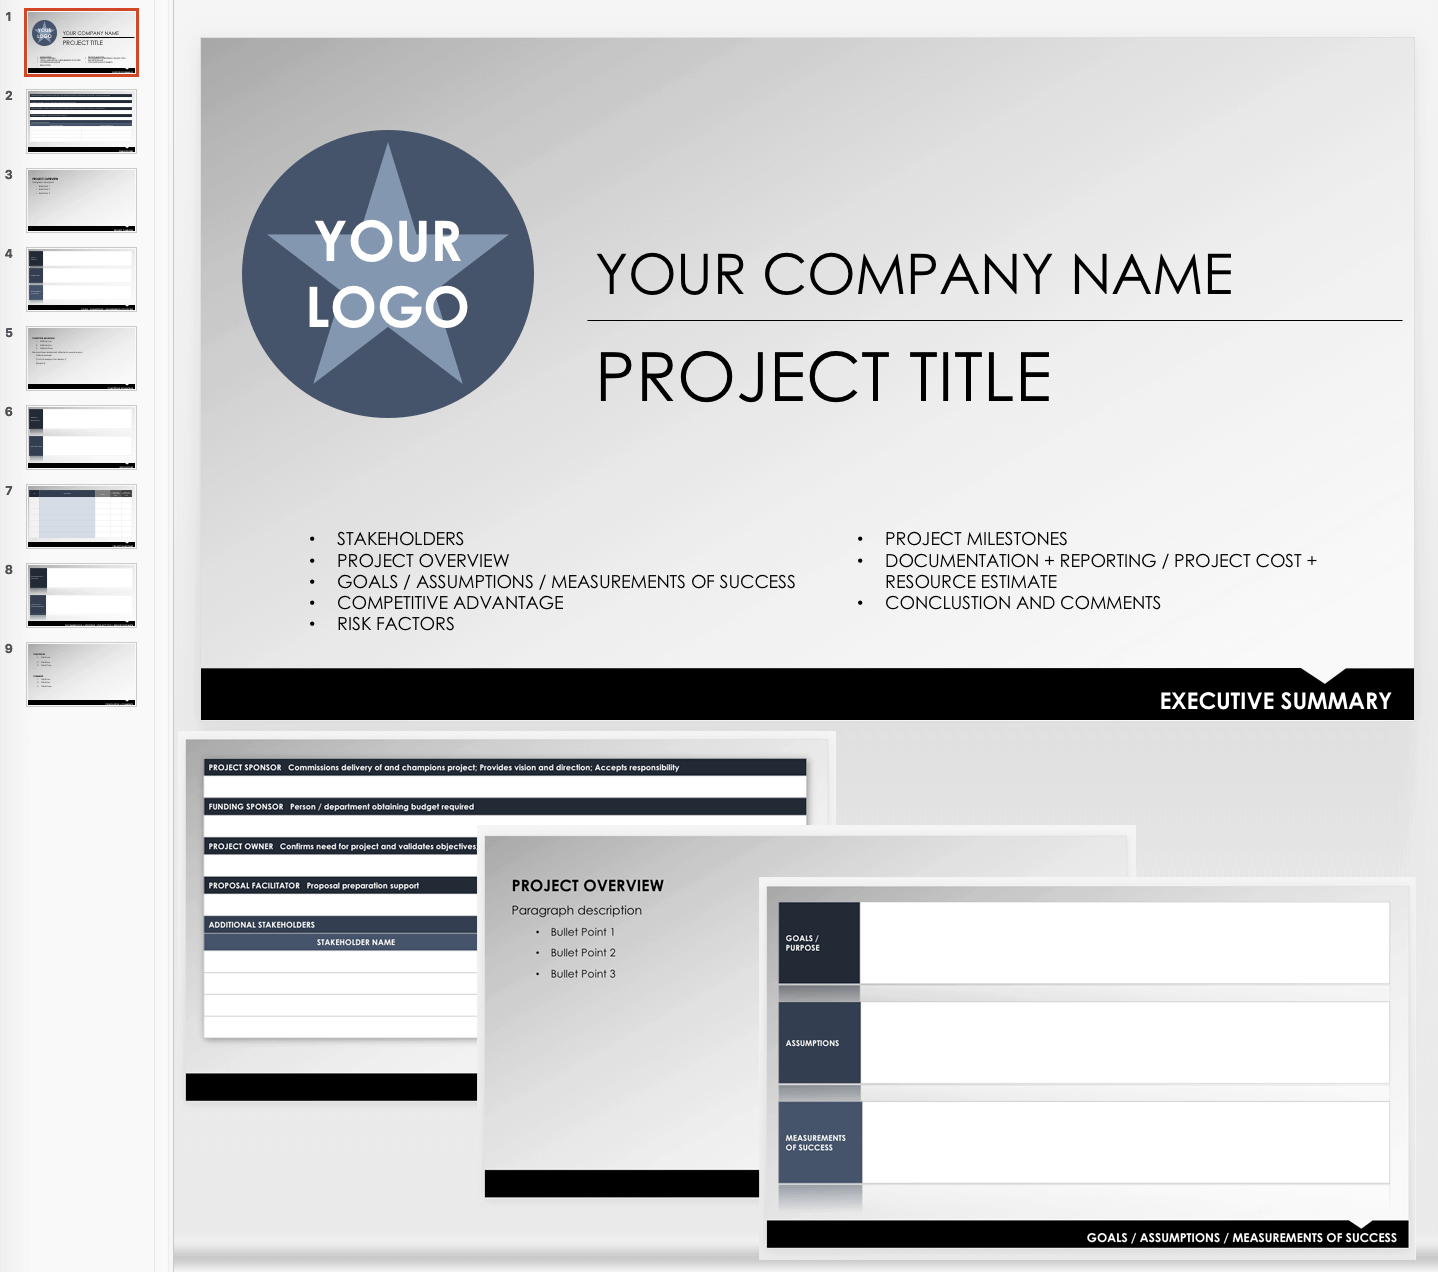 Executive Summary Outline Template   PowerPoint